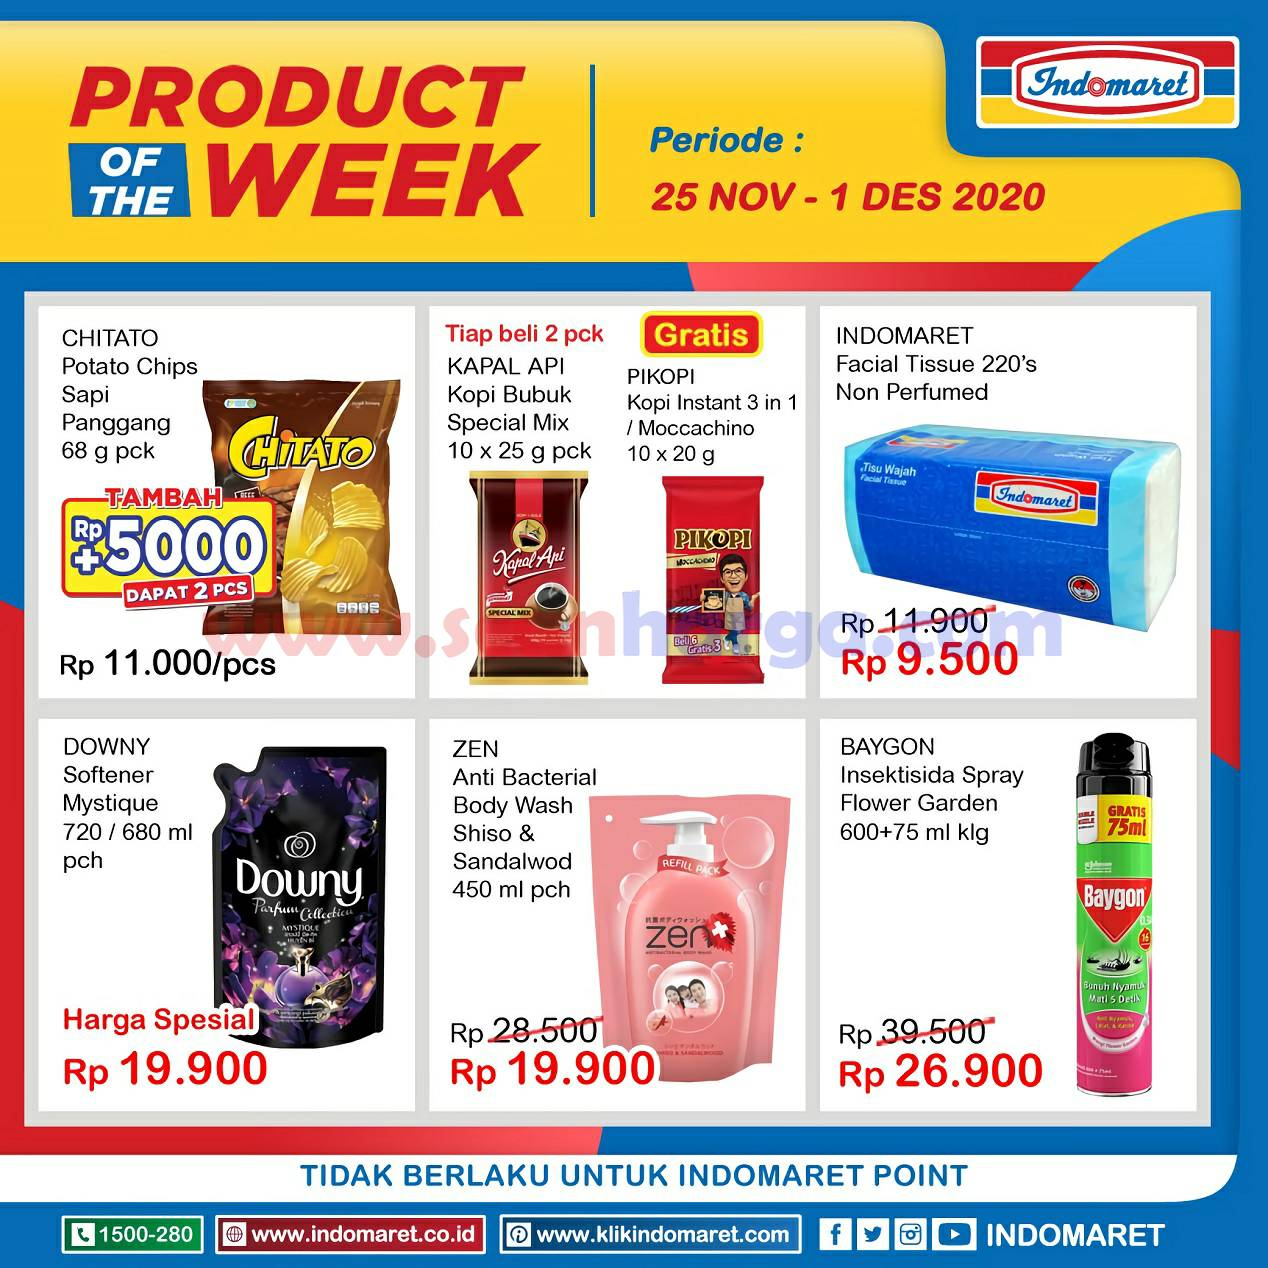 Katalog Indomaret Product Of The Week Promo PTW 25 November - 1 Desember 2020